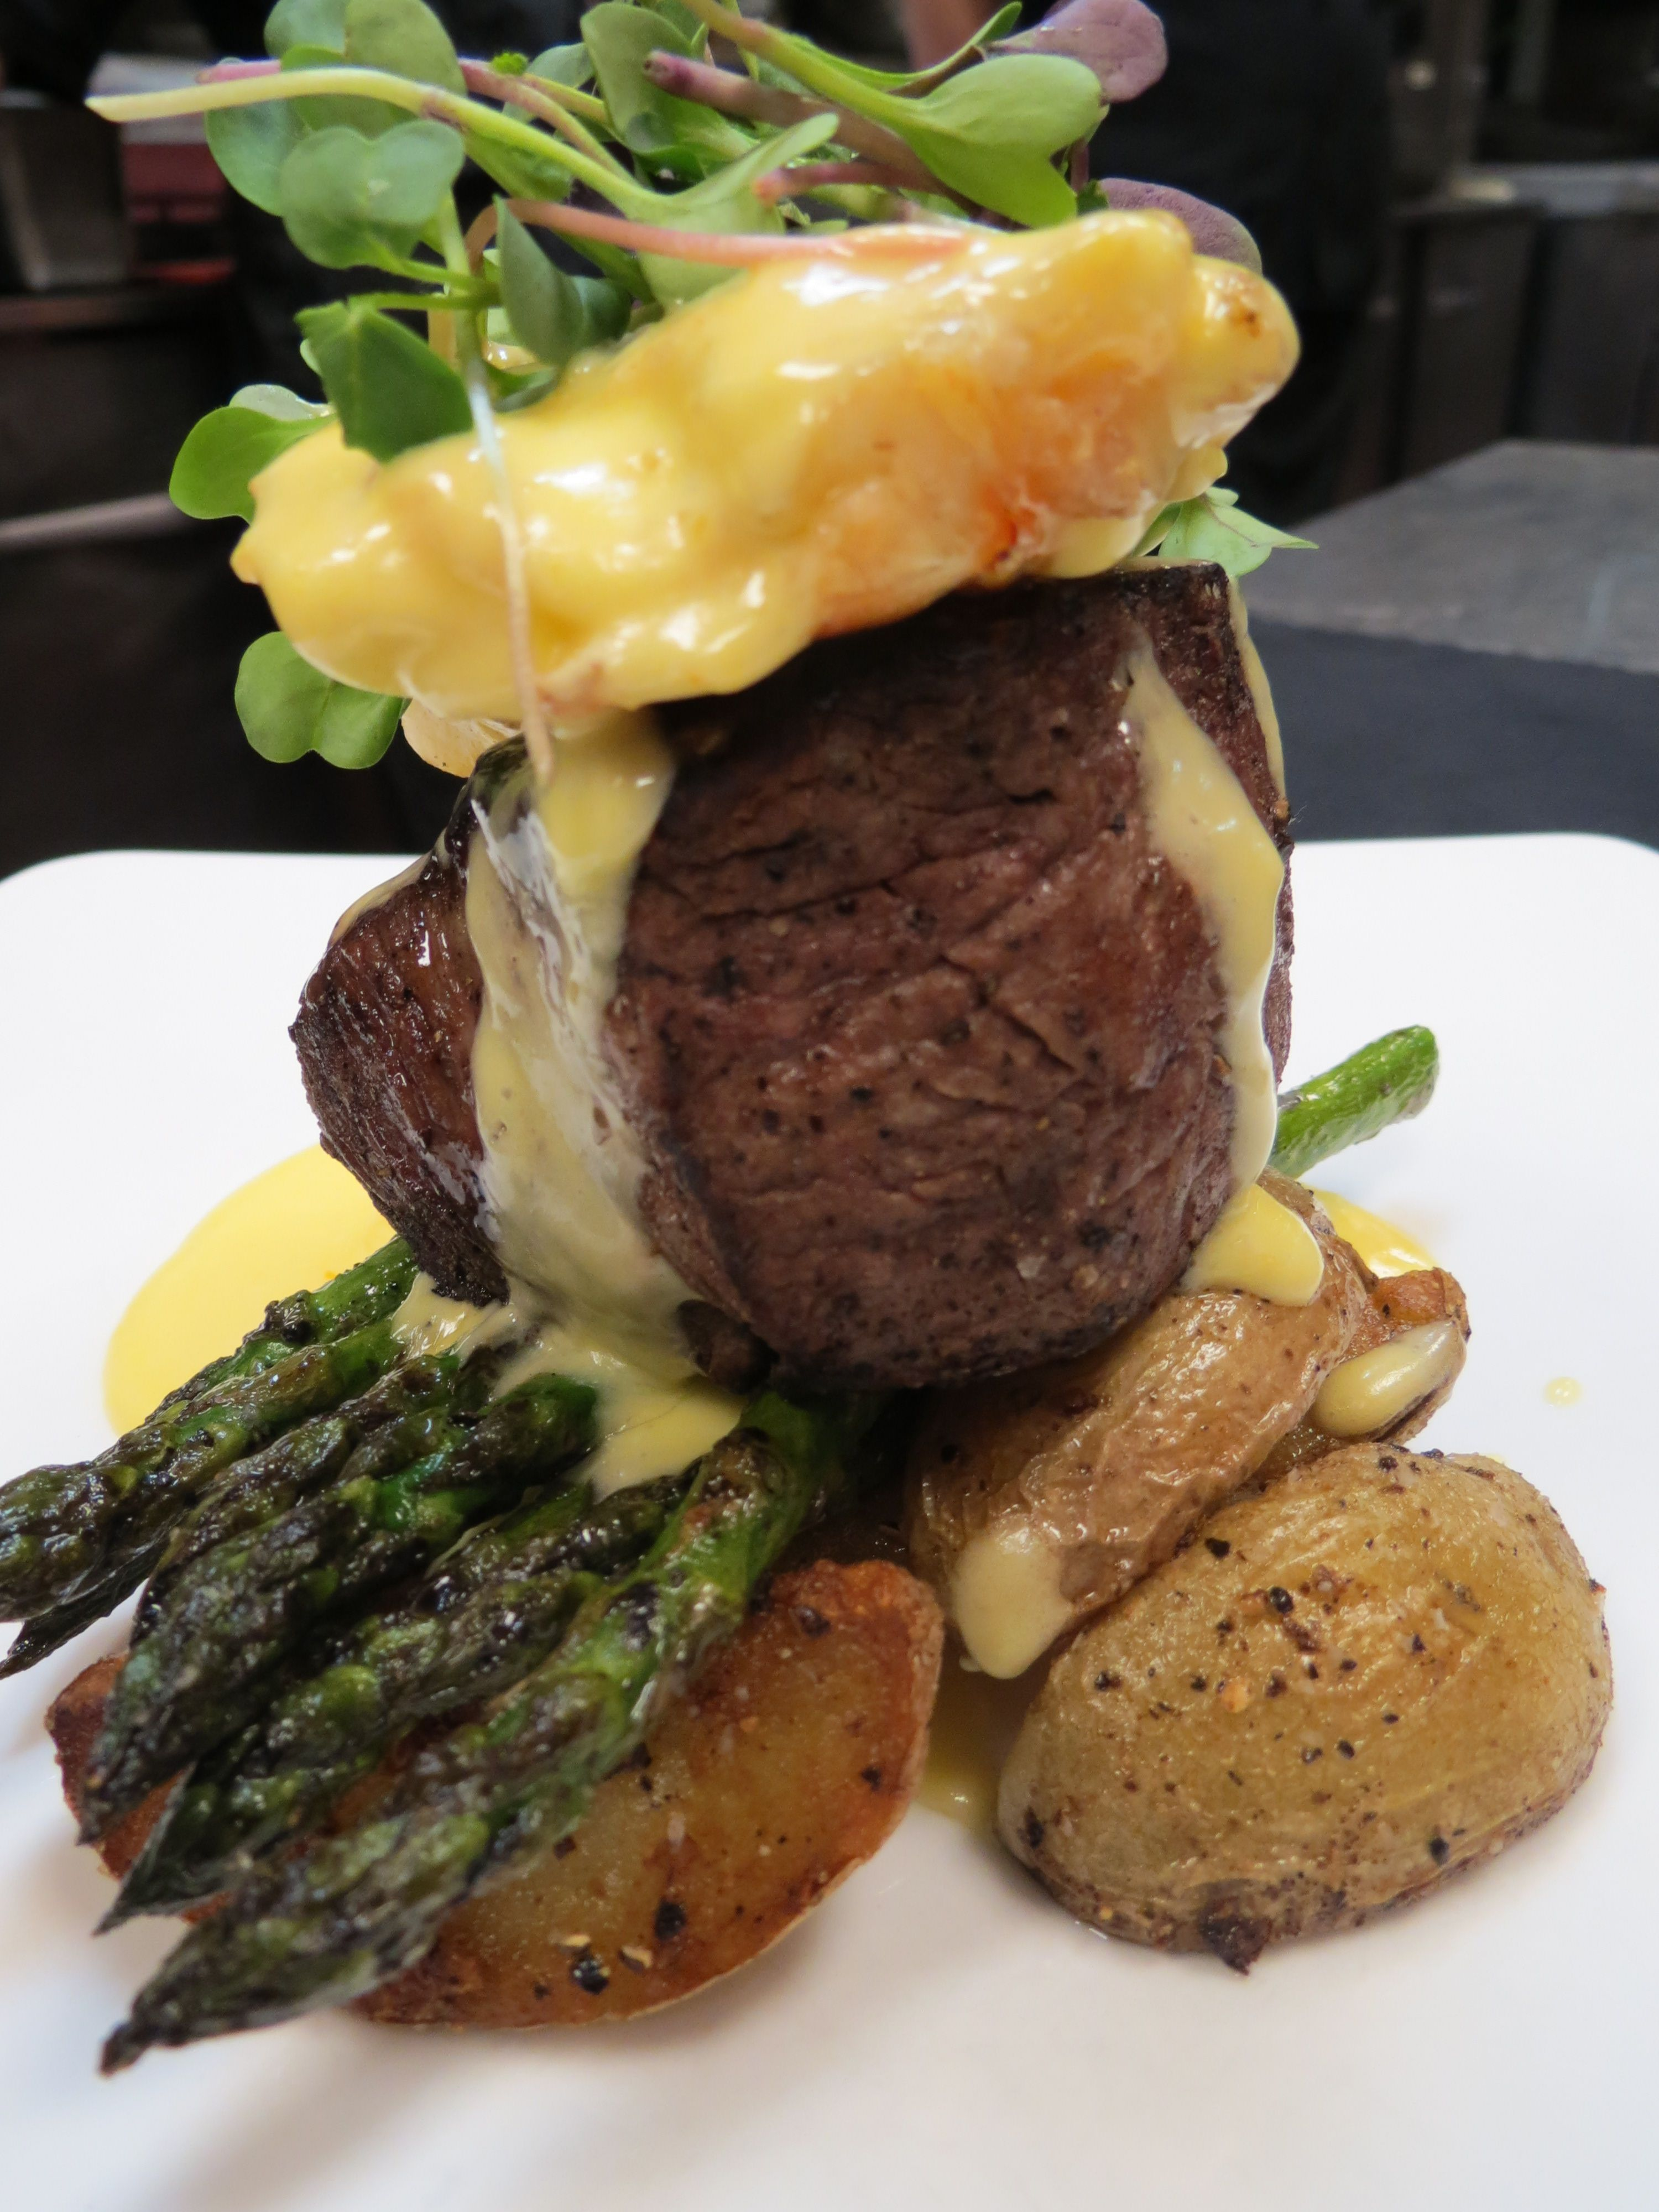 Pin by kayla turner on dinner nights in 2020 | Steak and ...